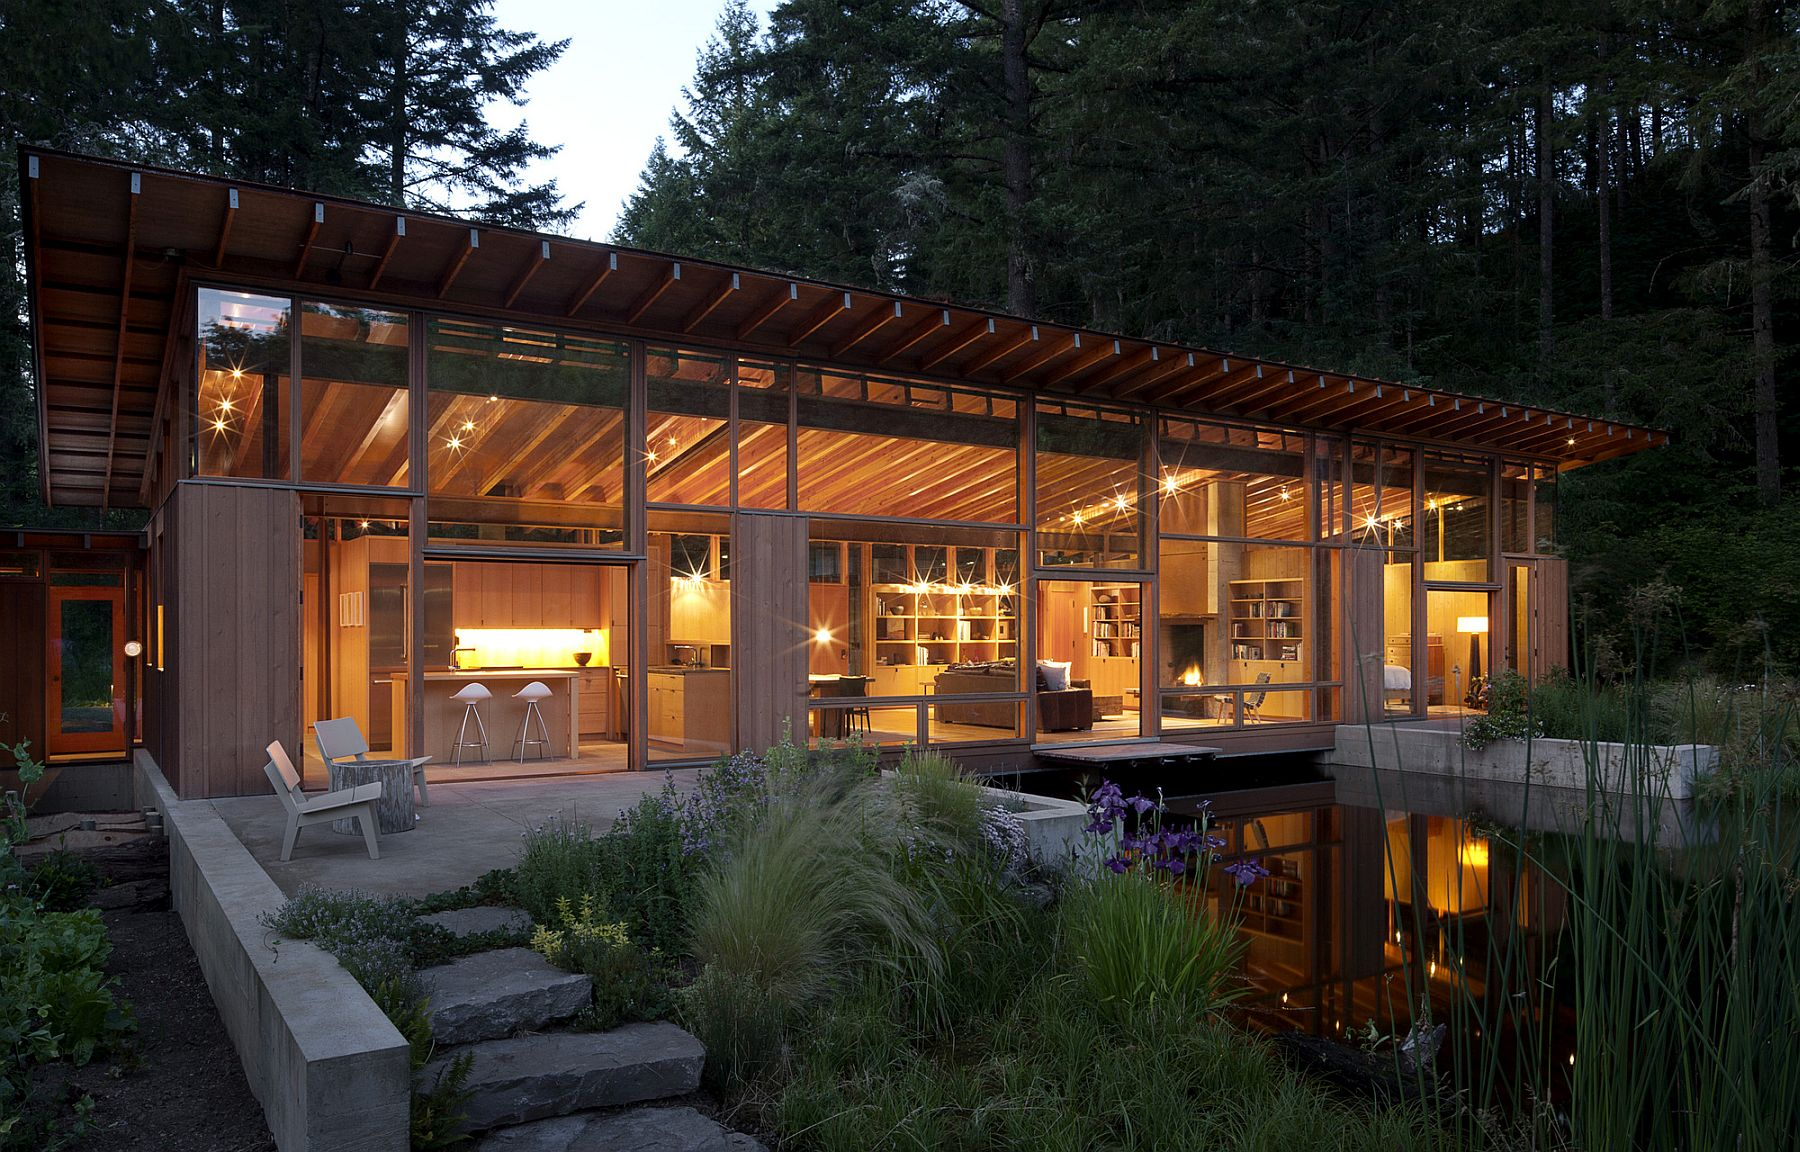 Warm lighting creates an inviting, natural environment at the Newberg Residence